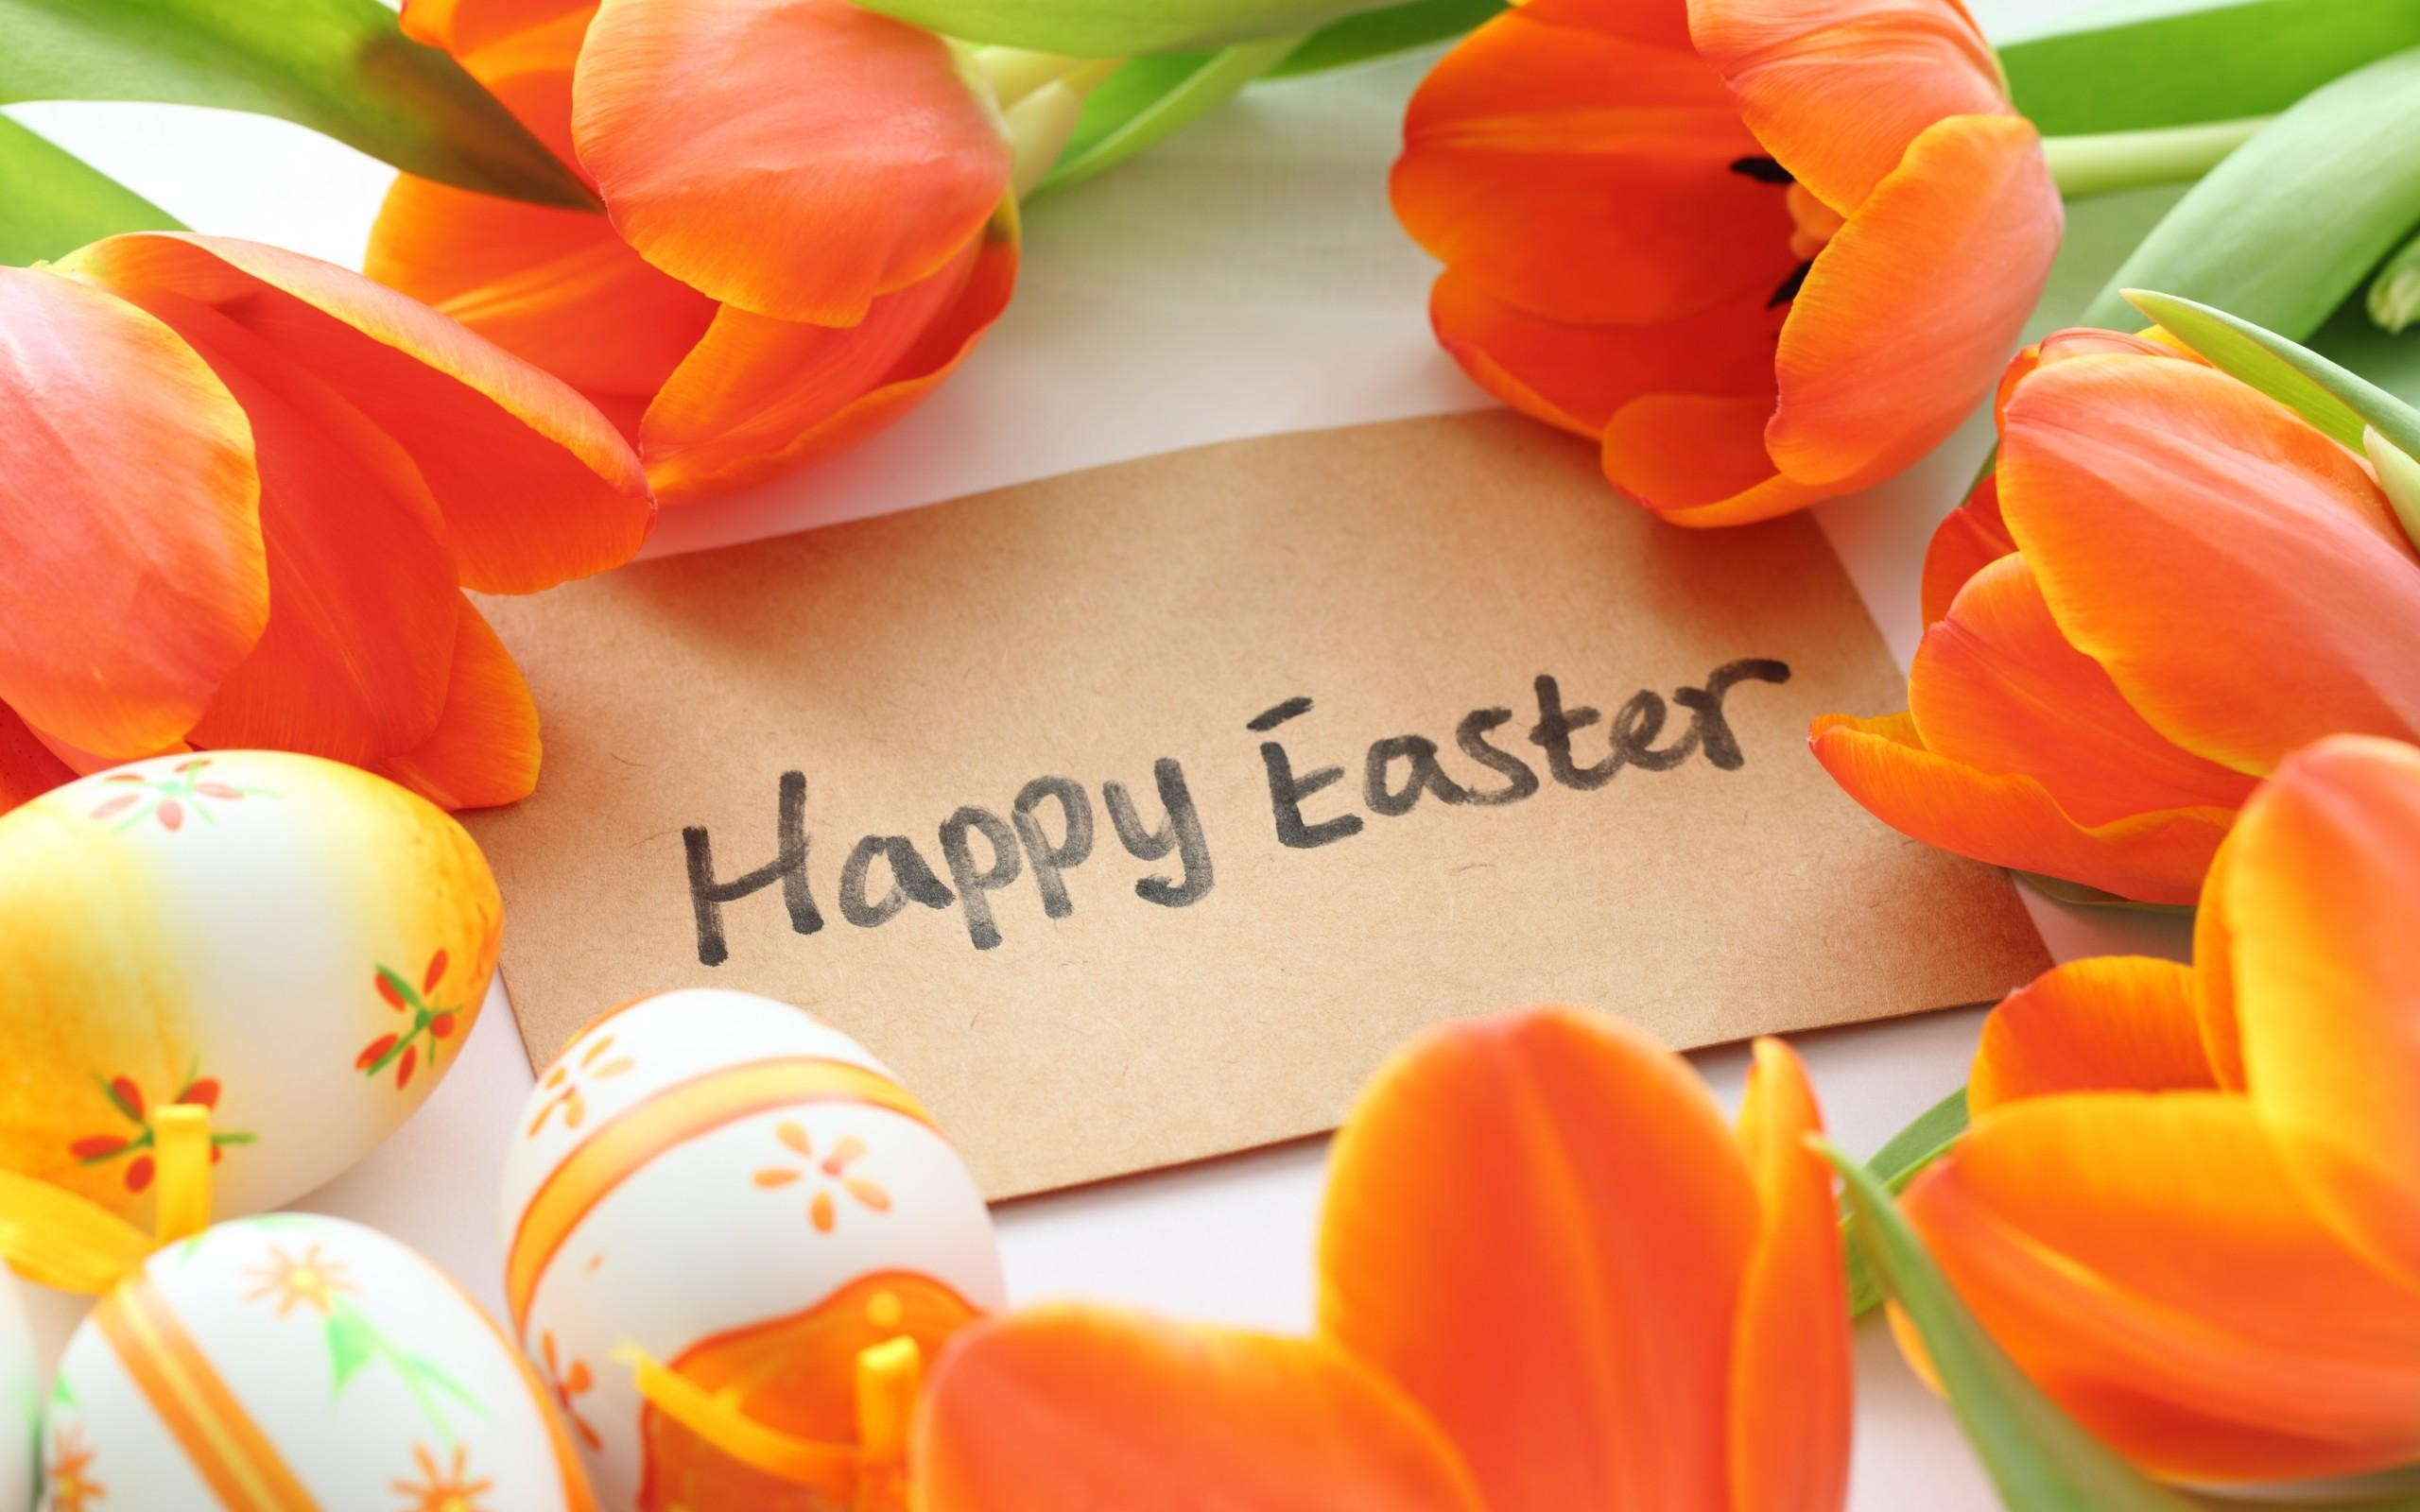 2560x1600 happy easter holiday wallpaper hd hd wallpapers free amazing smart phones  pictures desktop wallpapers samsung phone wallpapers digital photos  2560×1600 ...